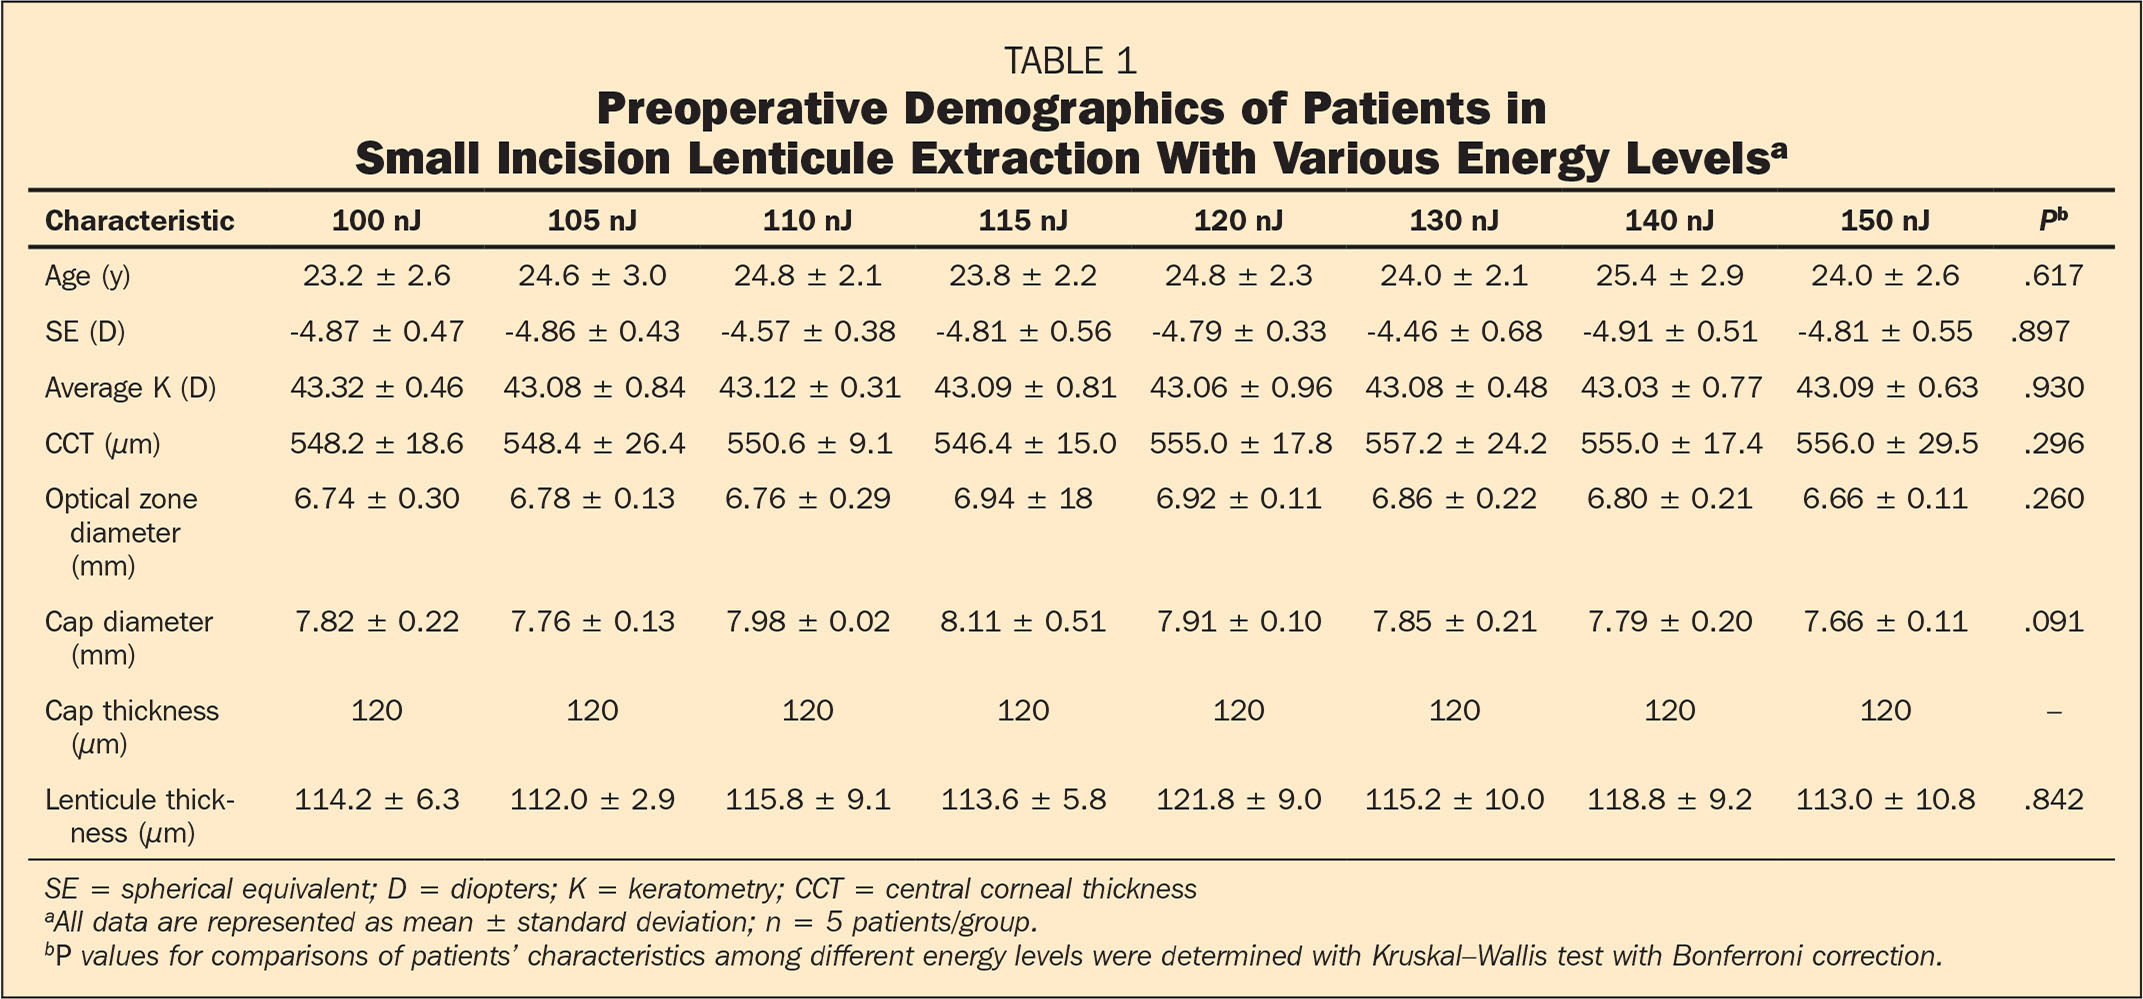 Preoperative Demographics of Patients in Small Incision Lenticule Extraction With Various Energy Levelsa